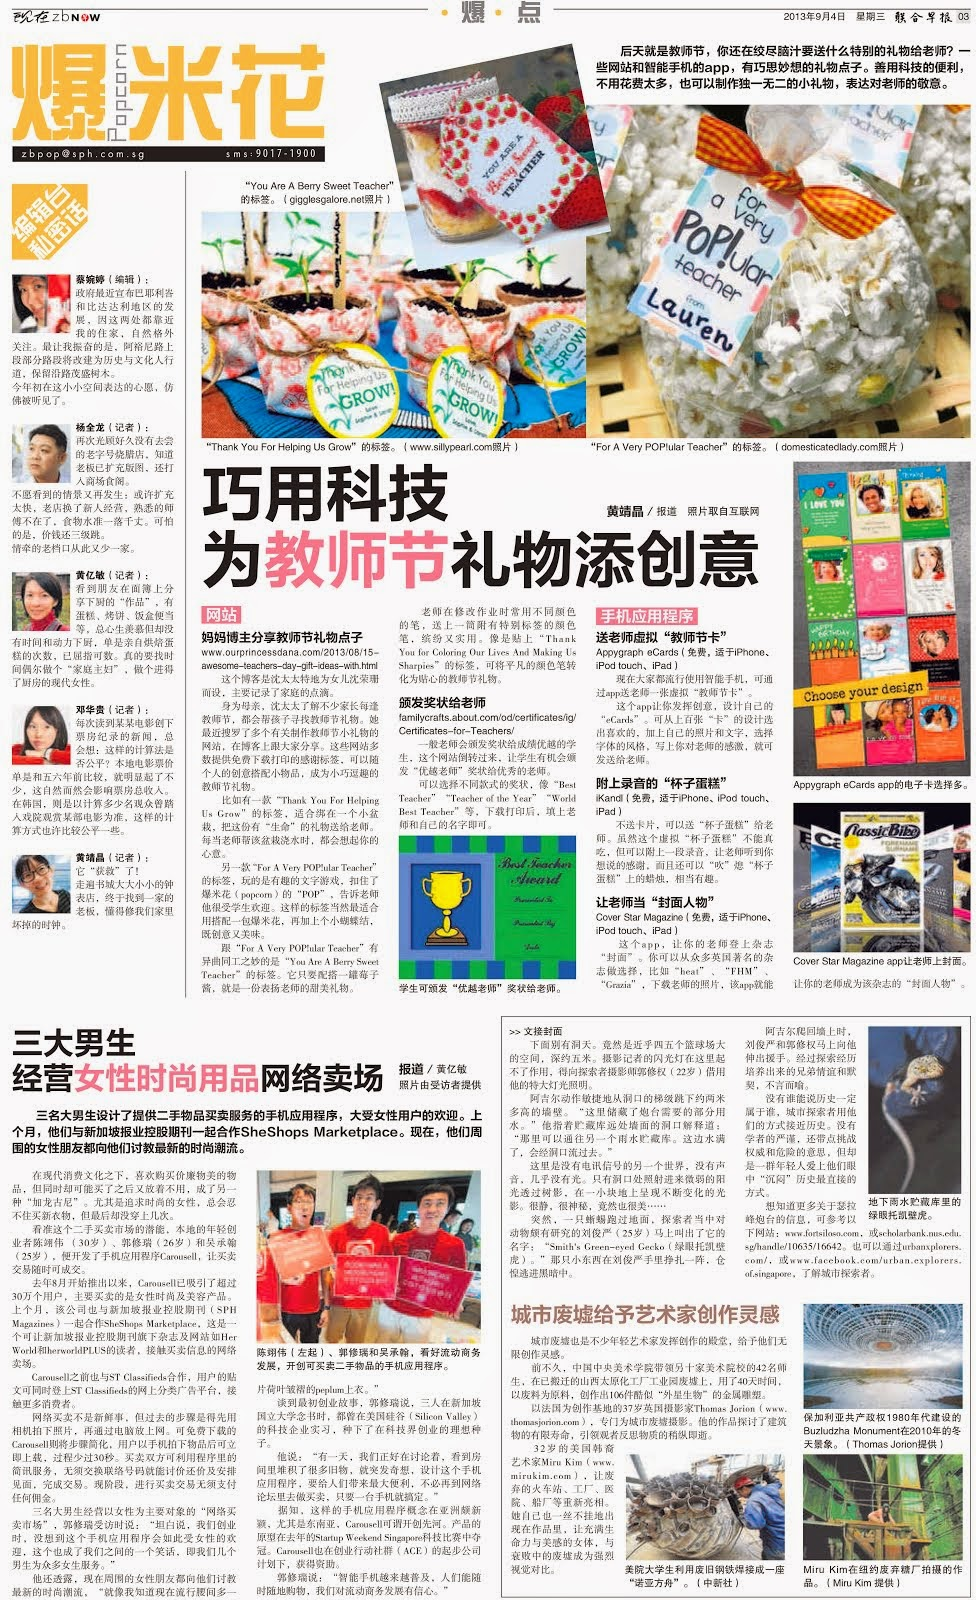 ZaoBao Now